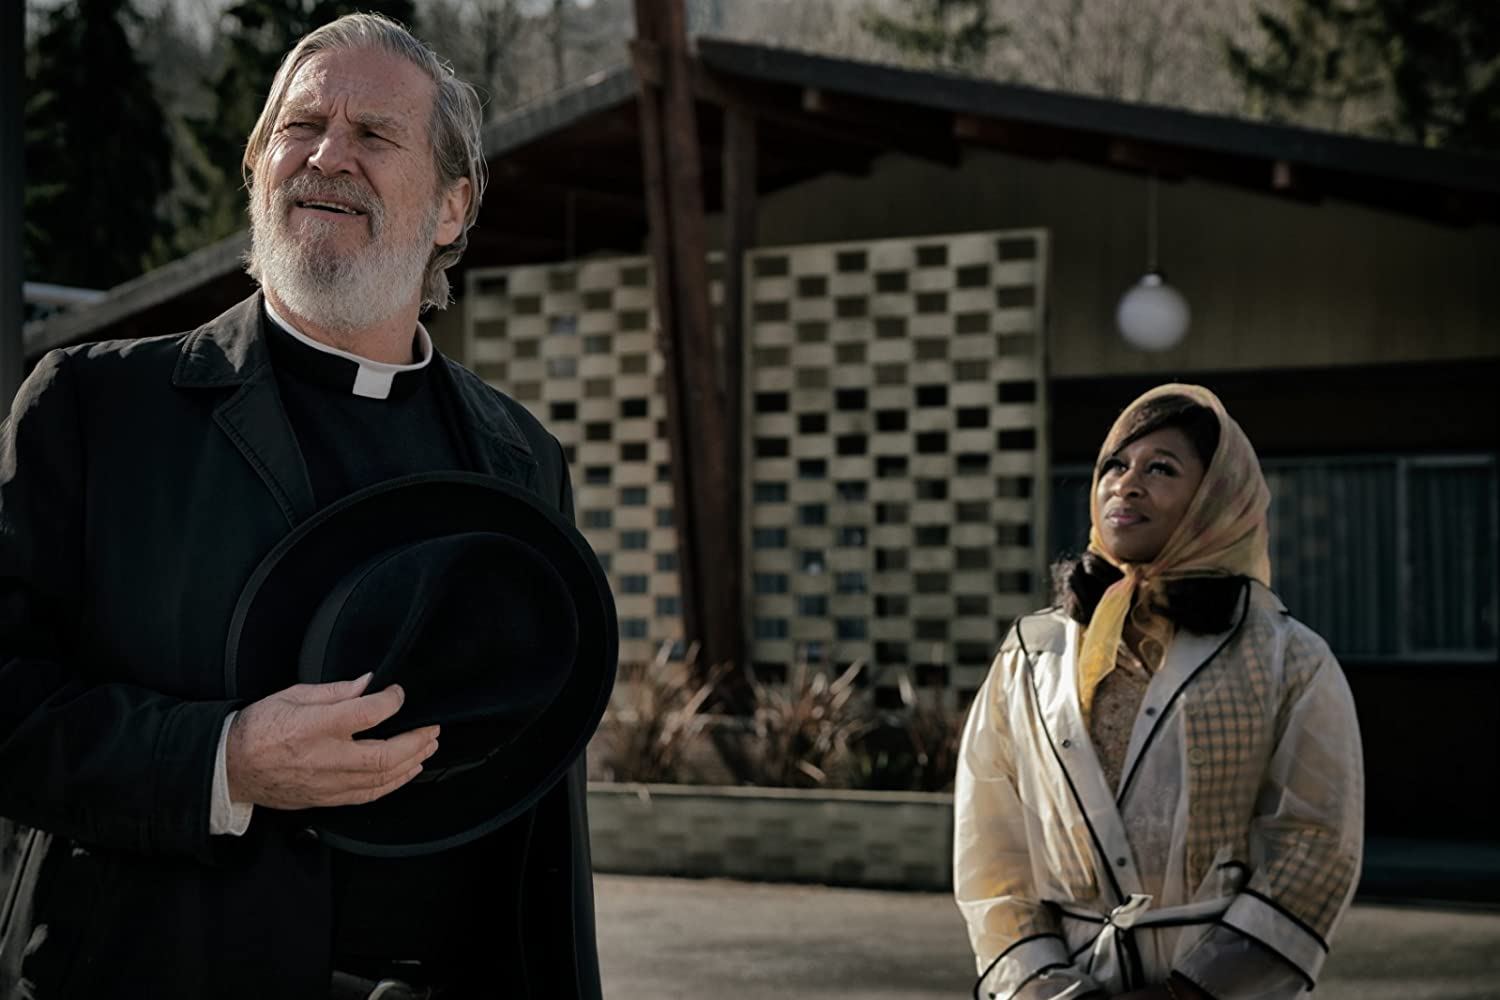 Jeff Bridges and Cynthia Erivo in Bad Times at the El Royale (2018)